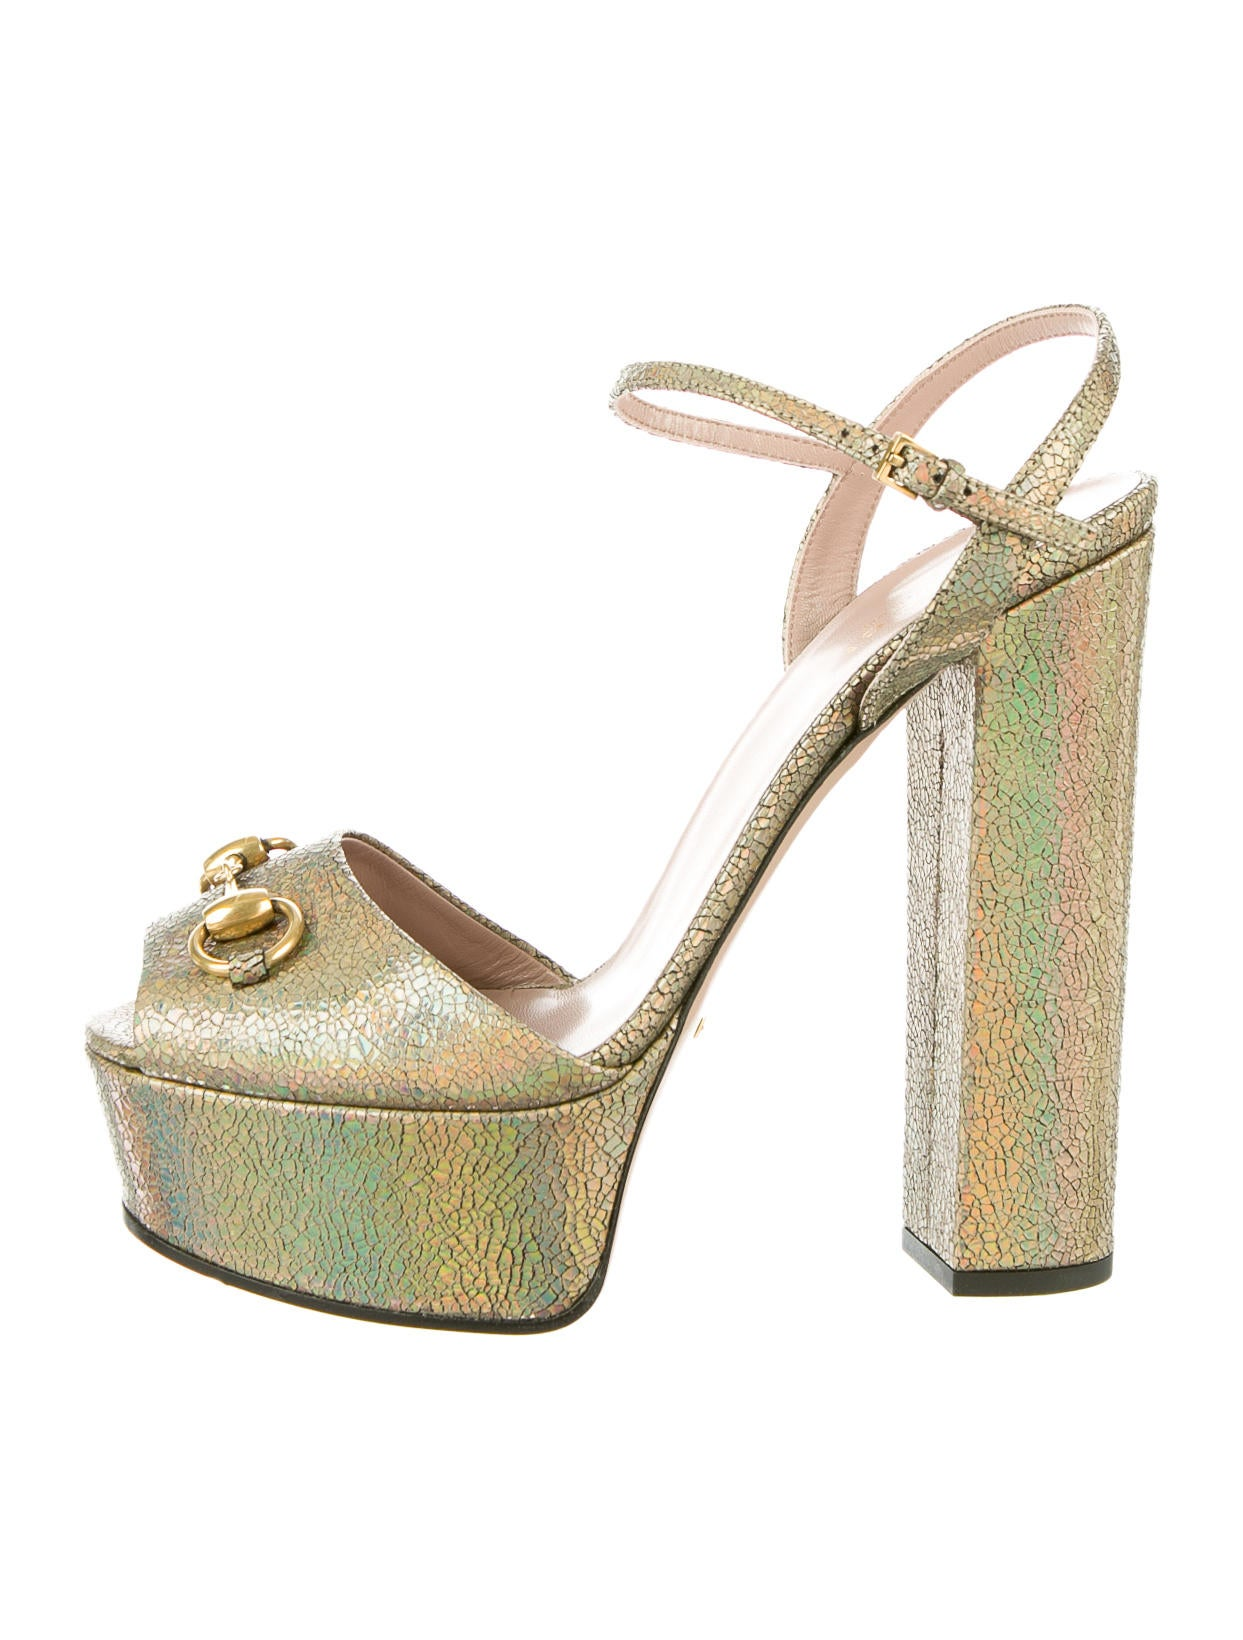 b2f7a374a7e Gucci Claudie Iridescent Platform Sandals w  Tags - Shoes - GUC42118 ...